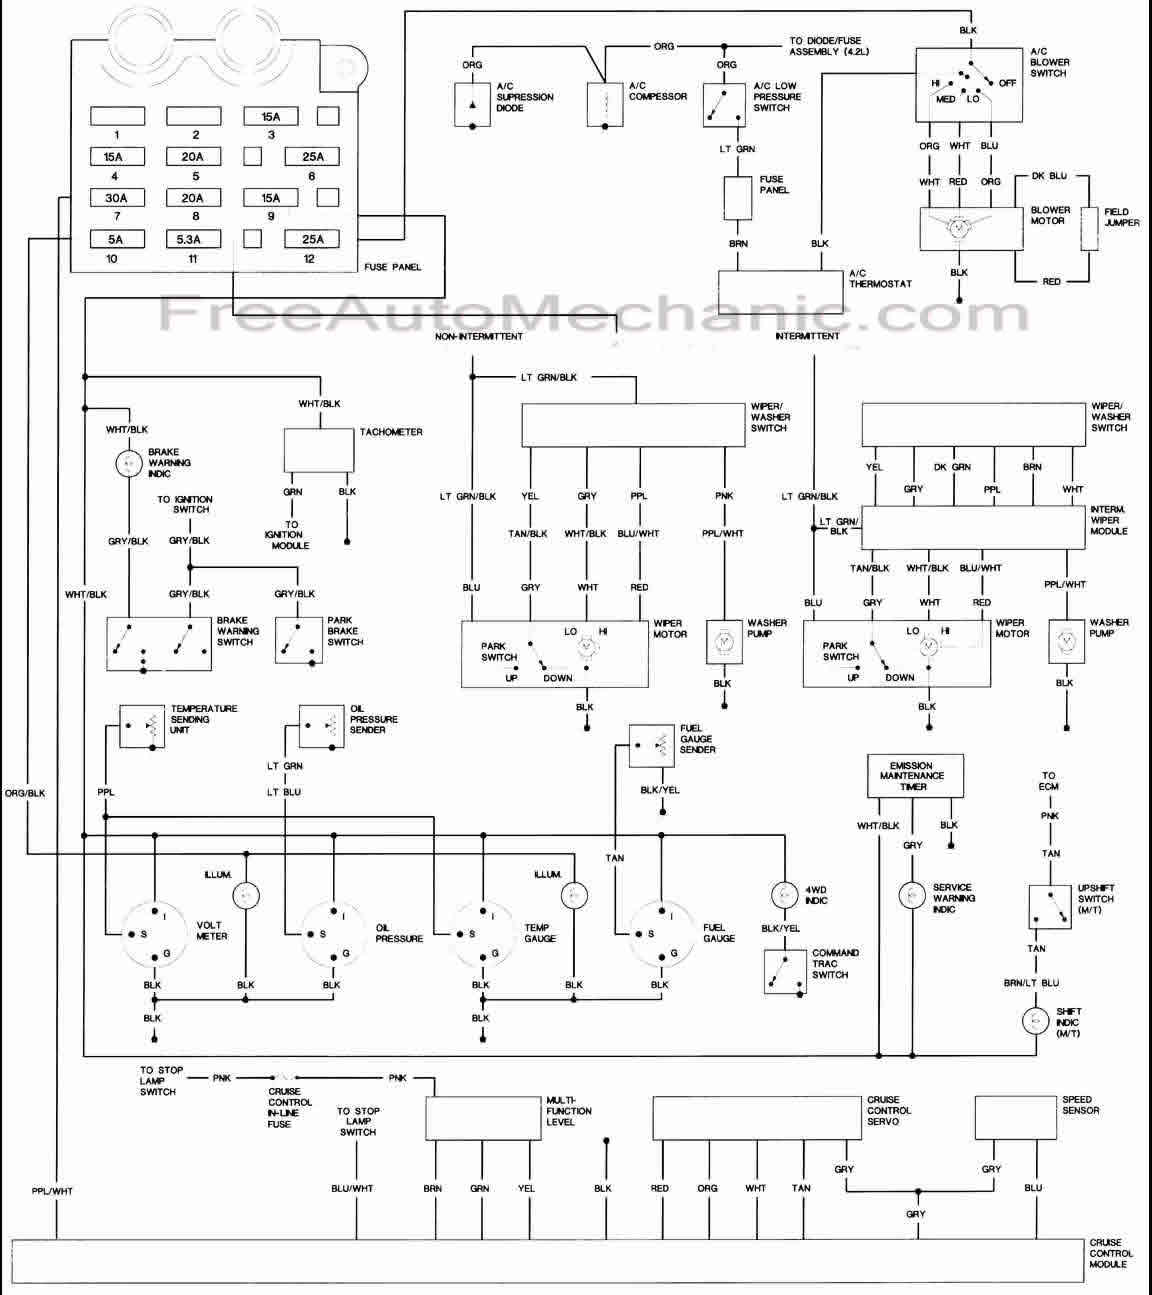 DIAGRAM] 1999 Jeep Wrangler Wiring Diagram FULL Version HD Quality Wiring  Diagram - ITDIAGRAMS.CONSTRUCTION-CARACAS.FRitdiagrams.construction-caracas.fr